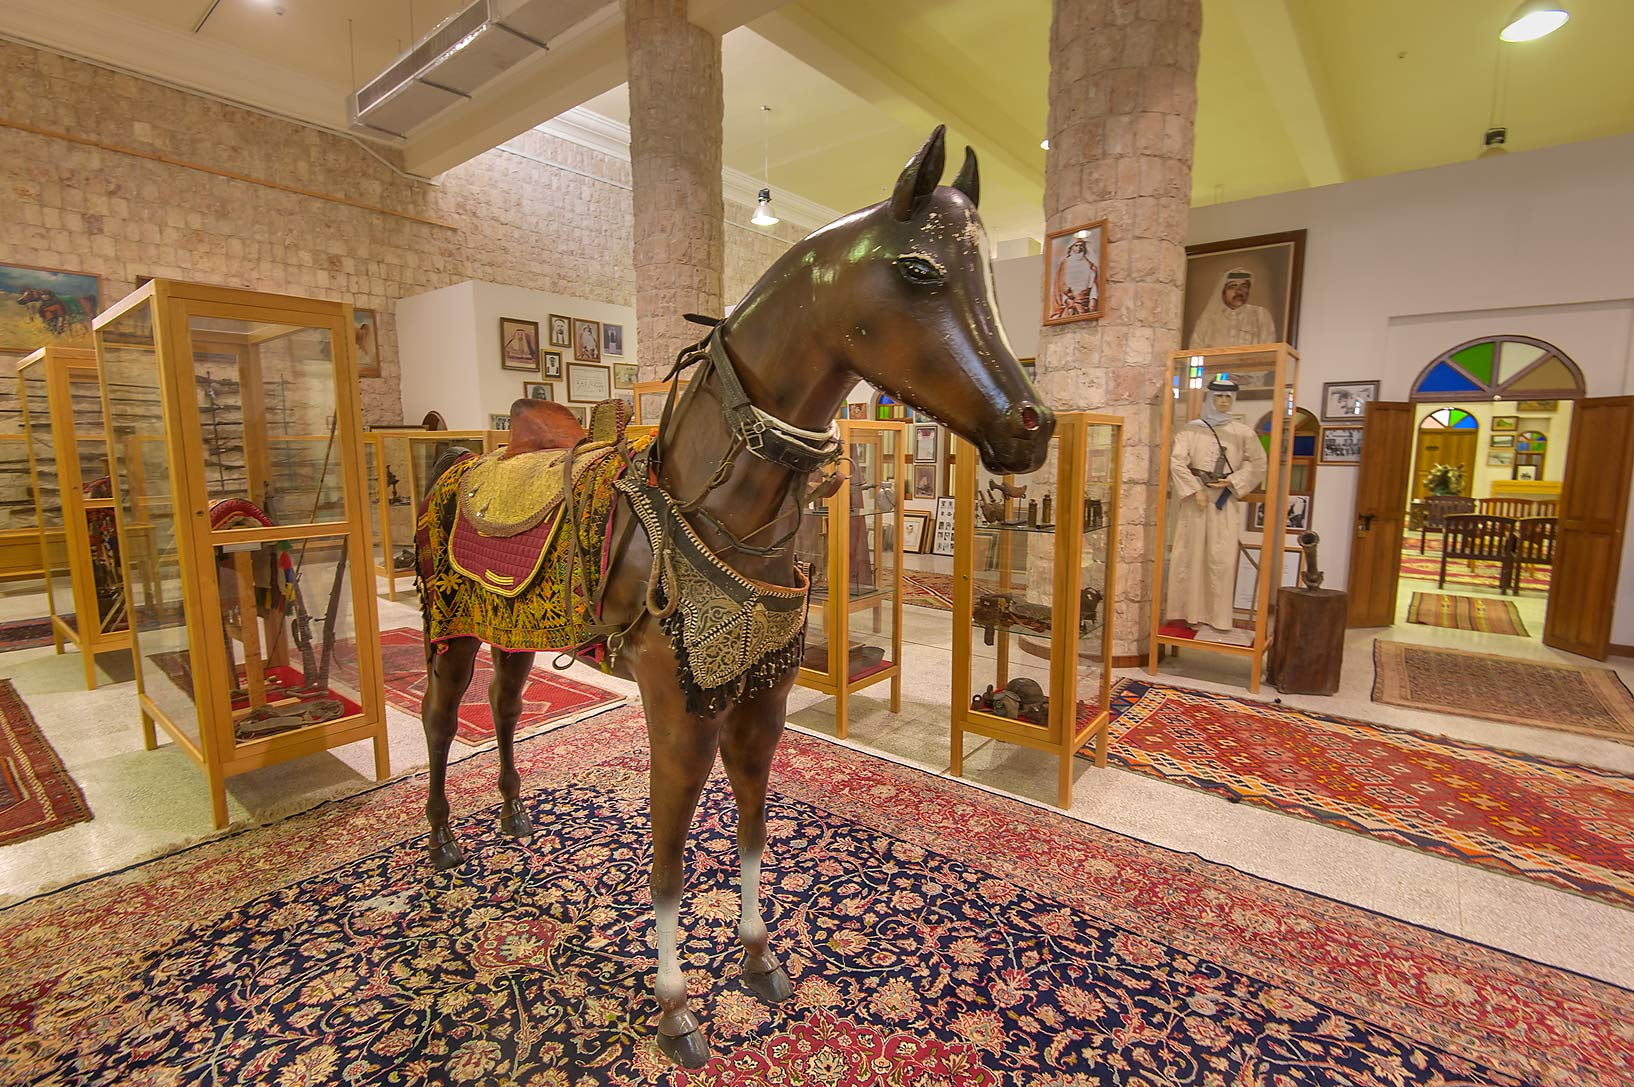 Dark brown horse on display in Sheikh Faisal Bin...Museum near Al-Shahaniya. Doha, Qatar